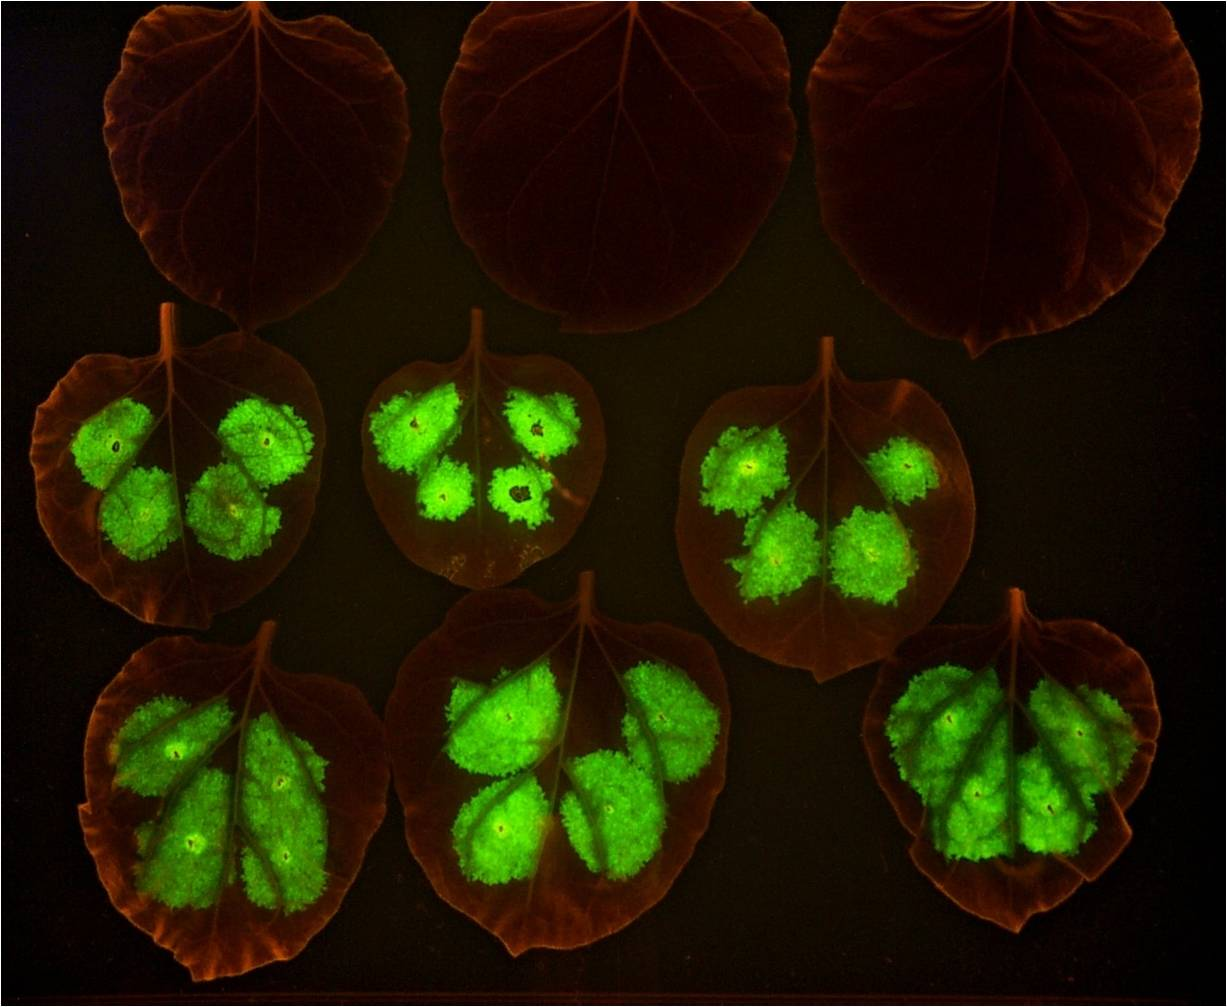 Image of leaves that fluoresce with GFP